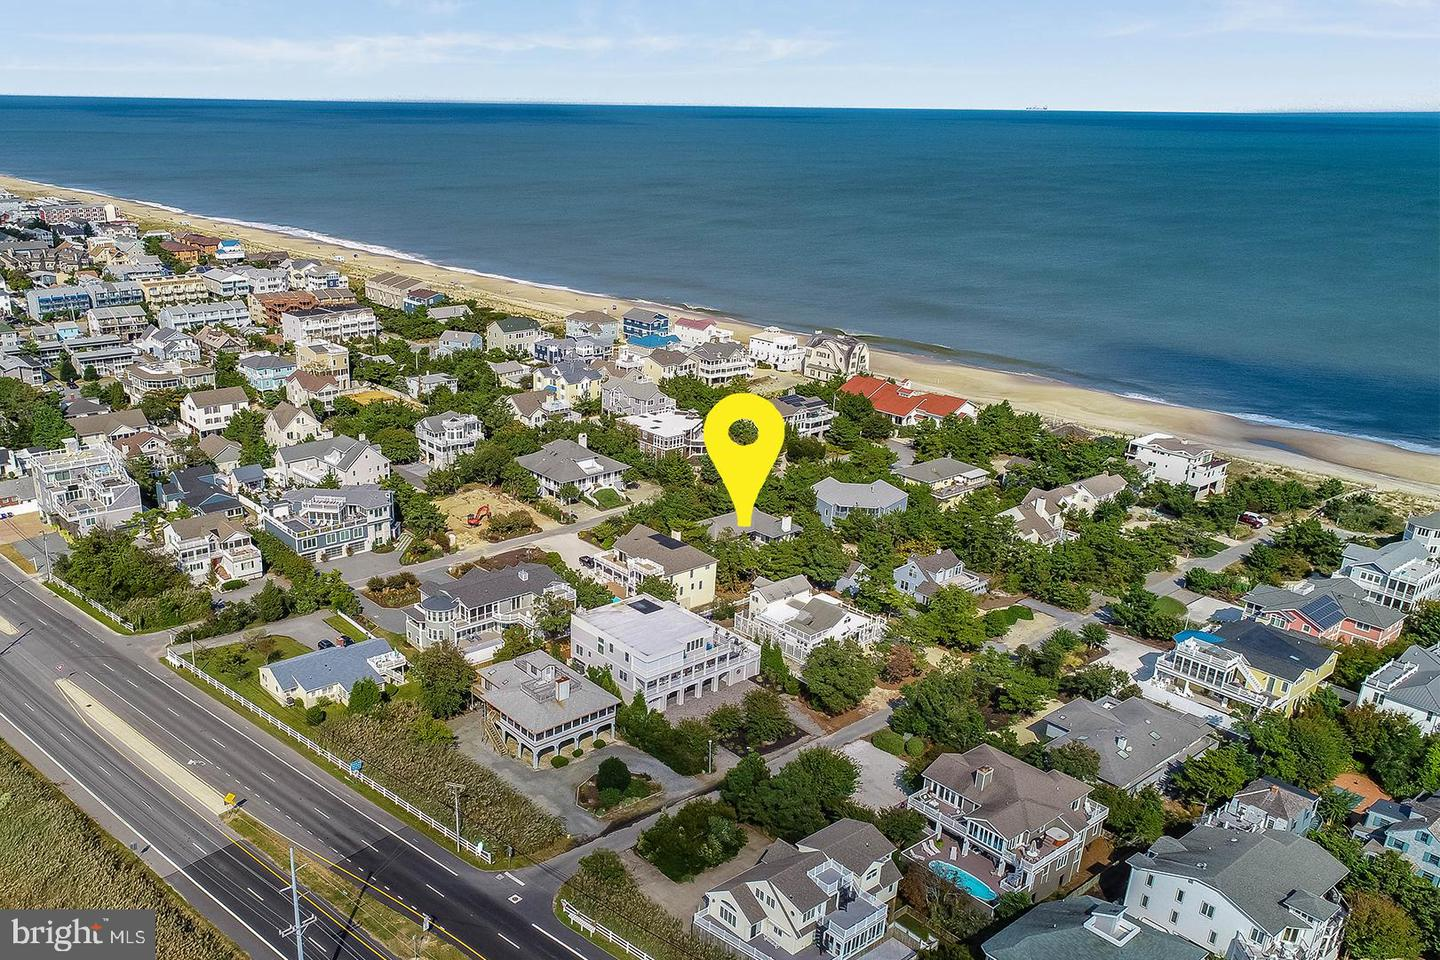 DESU152100-302166589584-2019-11-26-11-29-38 Sold Listings - Rehoboth Beach Real Estate - Bryce Lingo and Shaun Tull REALTORS, Rehoboth Beach, Delaware